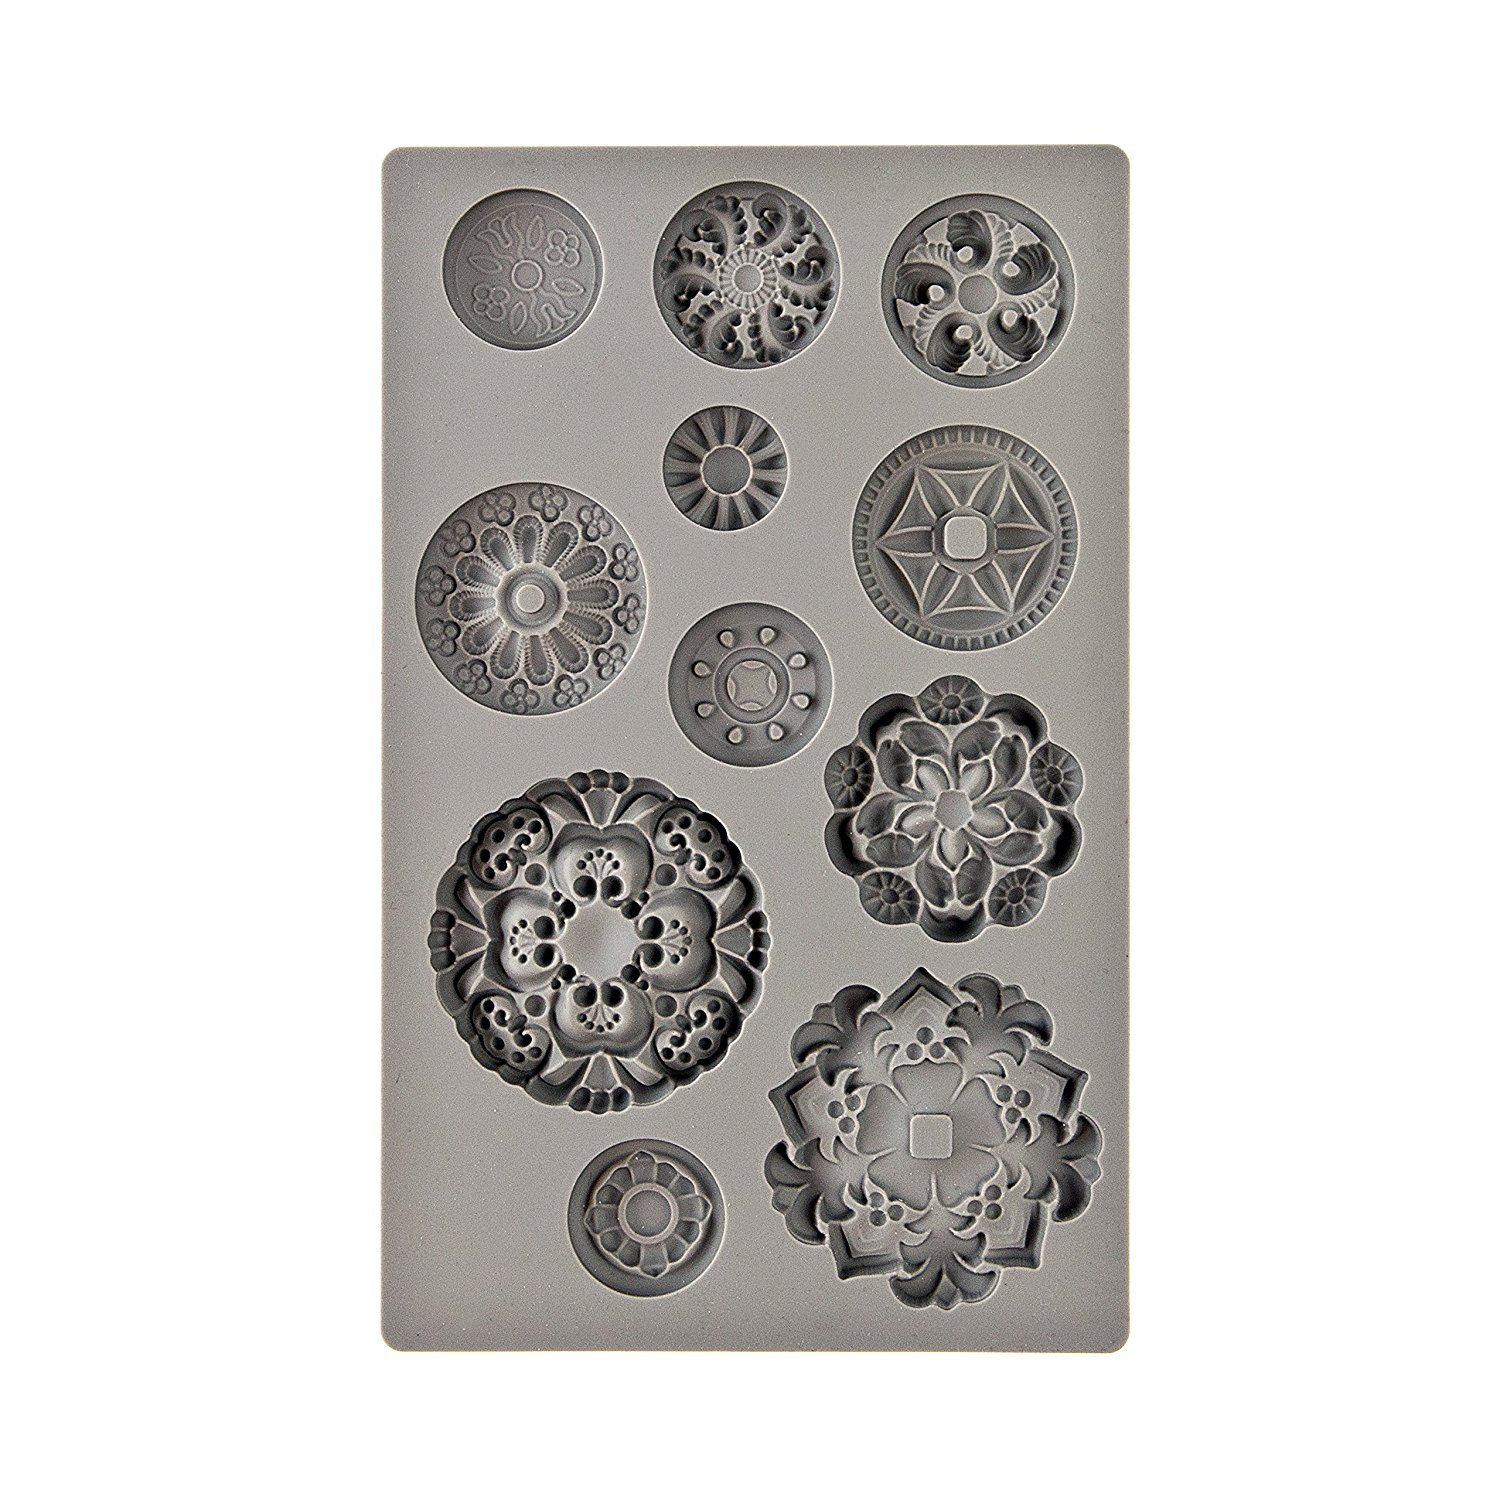 Prima Marketing Iod Decor Mold-Medallions Prima Marketing Inc 655350815790